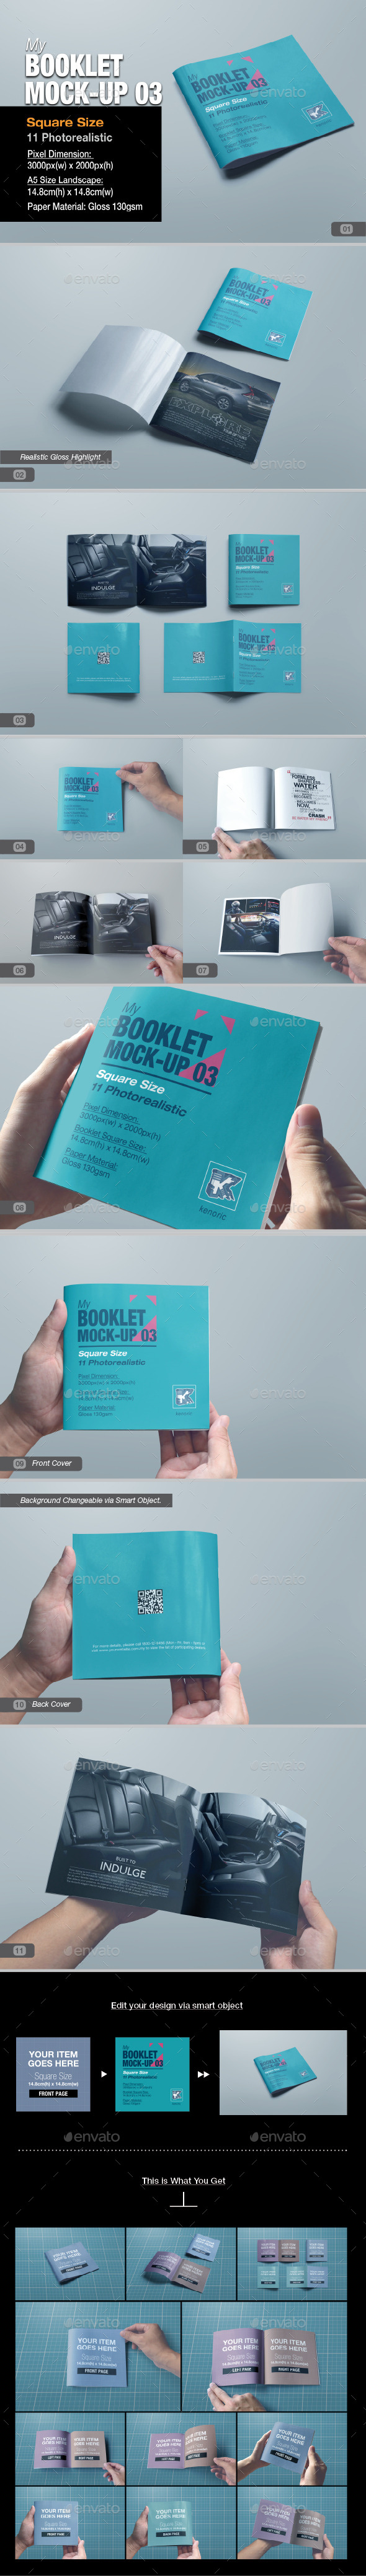 GraphicRiver myBooklet Mock-up 03 10512270